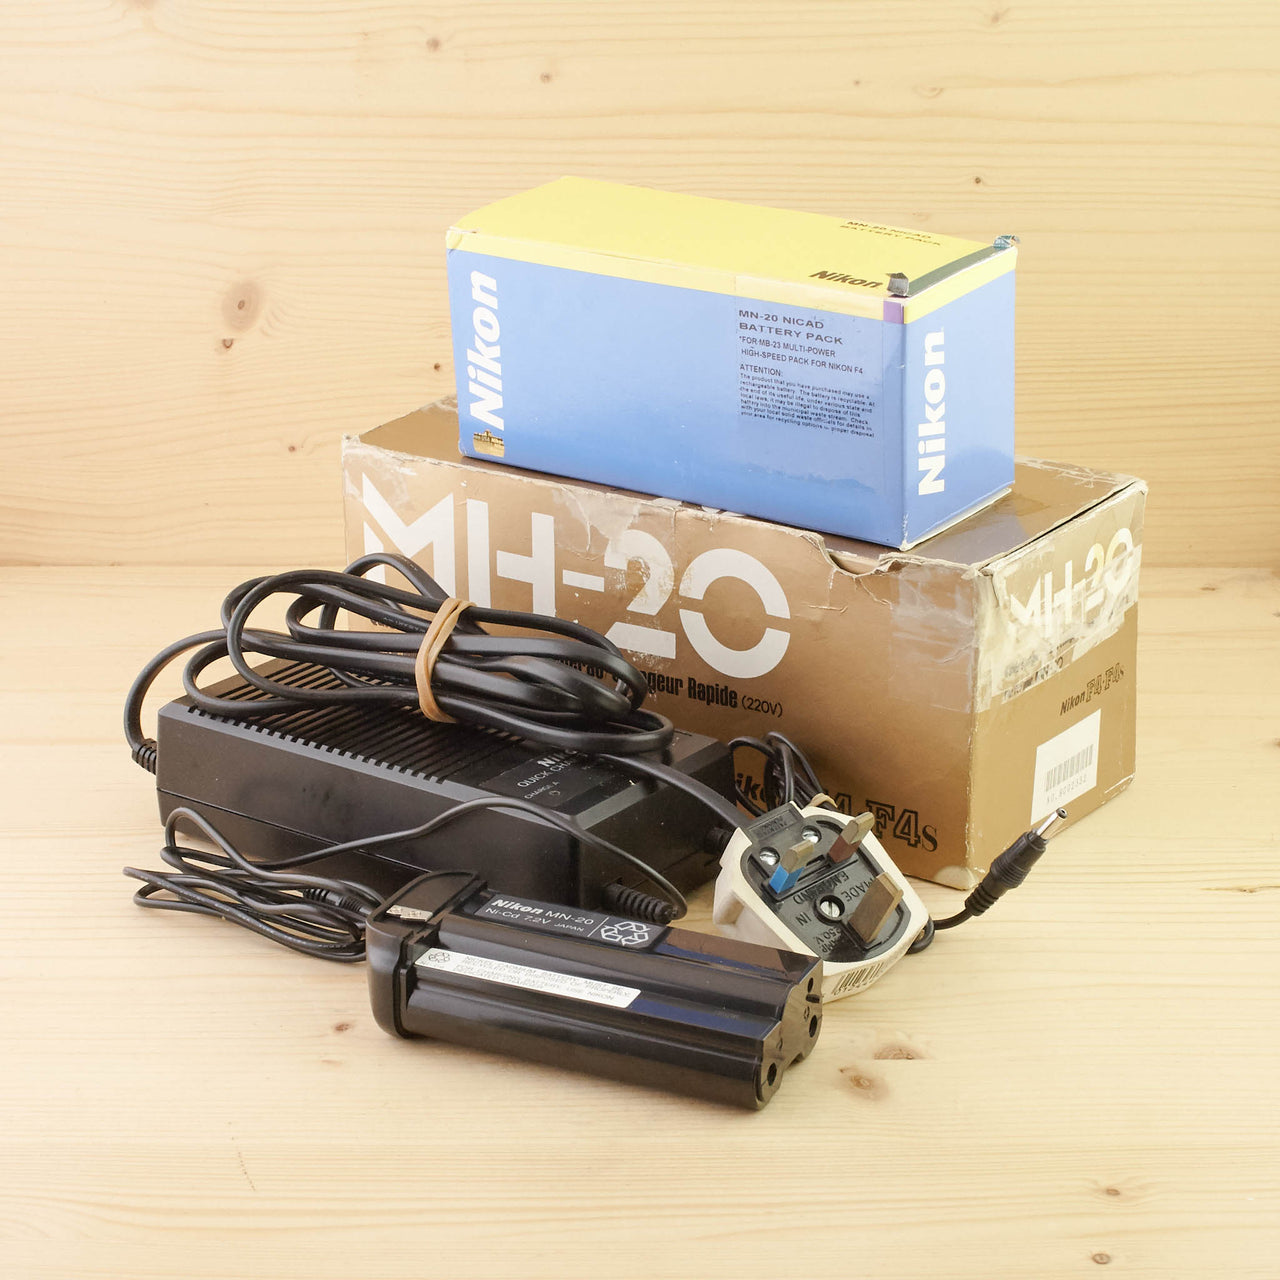 Nikon MN-20 NiCad Battery w/ MH-20 Charger Exc Boxed